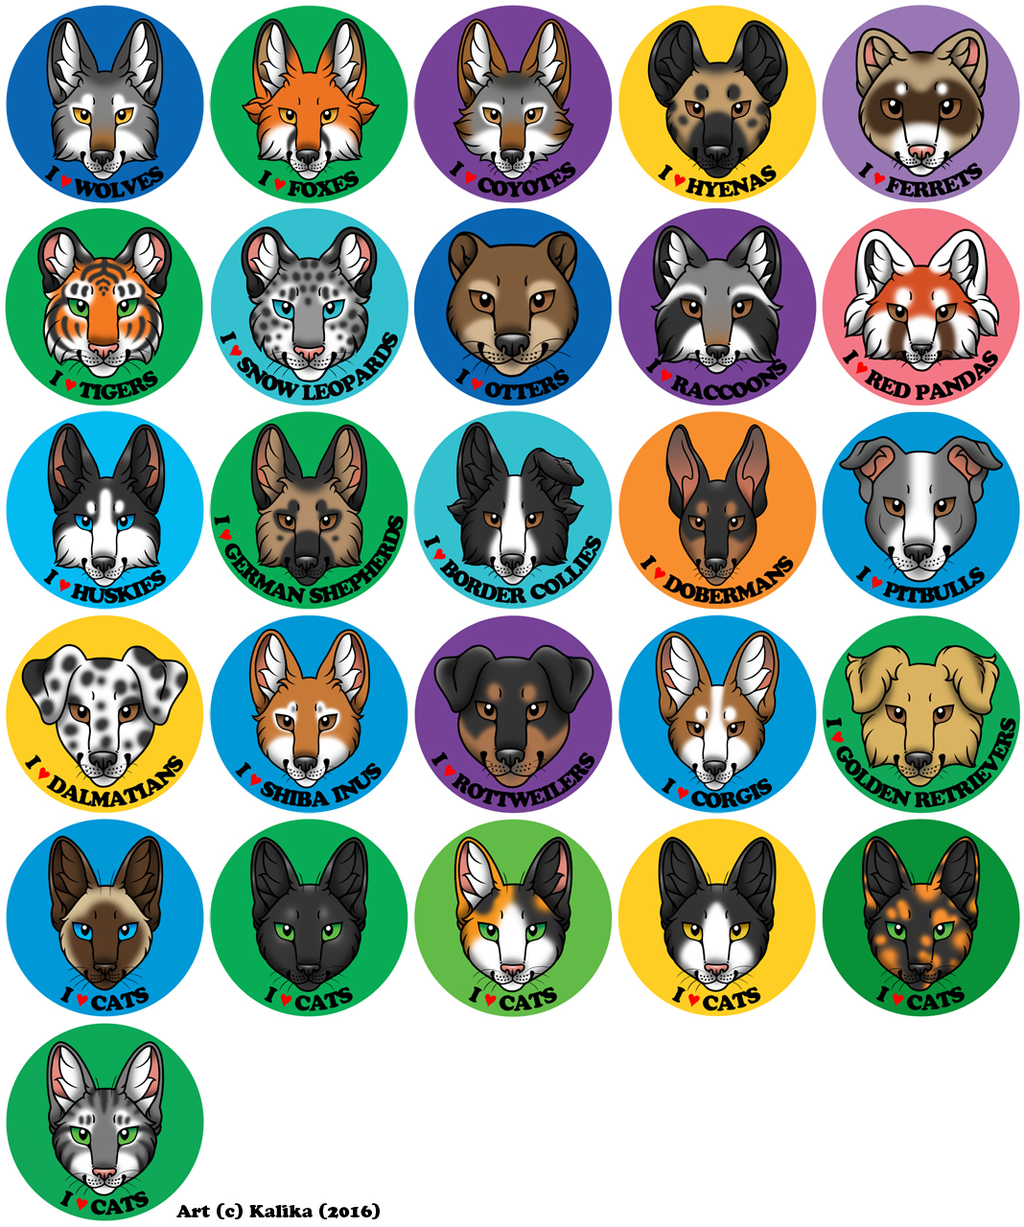 I Love Animals/Breeds Buttons (2016)